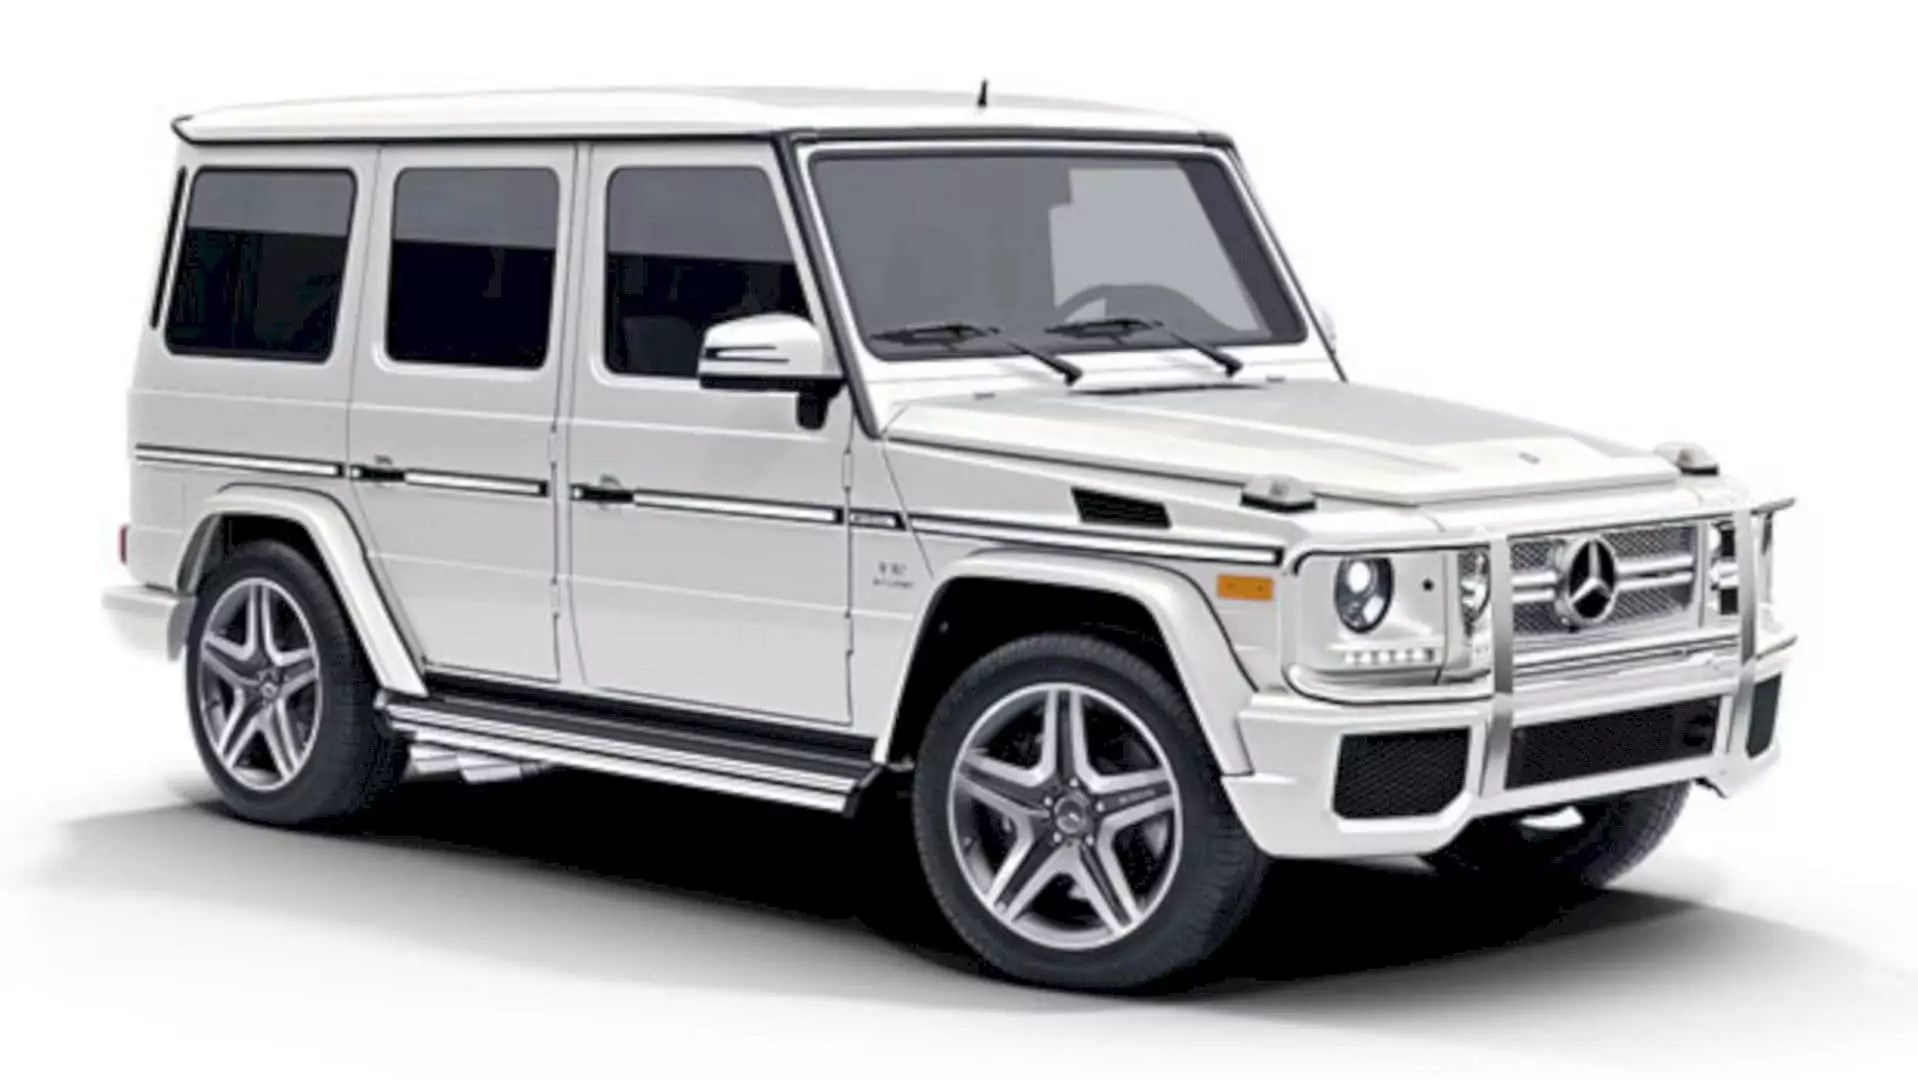 the ultimate amg g 65 suv by marcedes benz design listicle. Black Bedroom Furniture Sets. Home Design Ideas